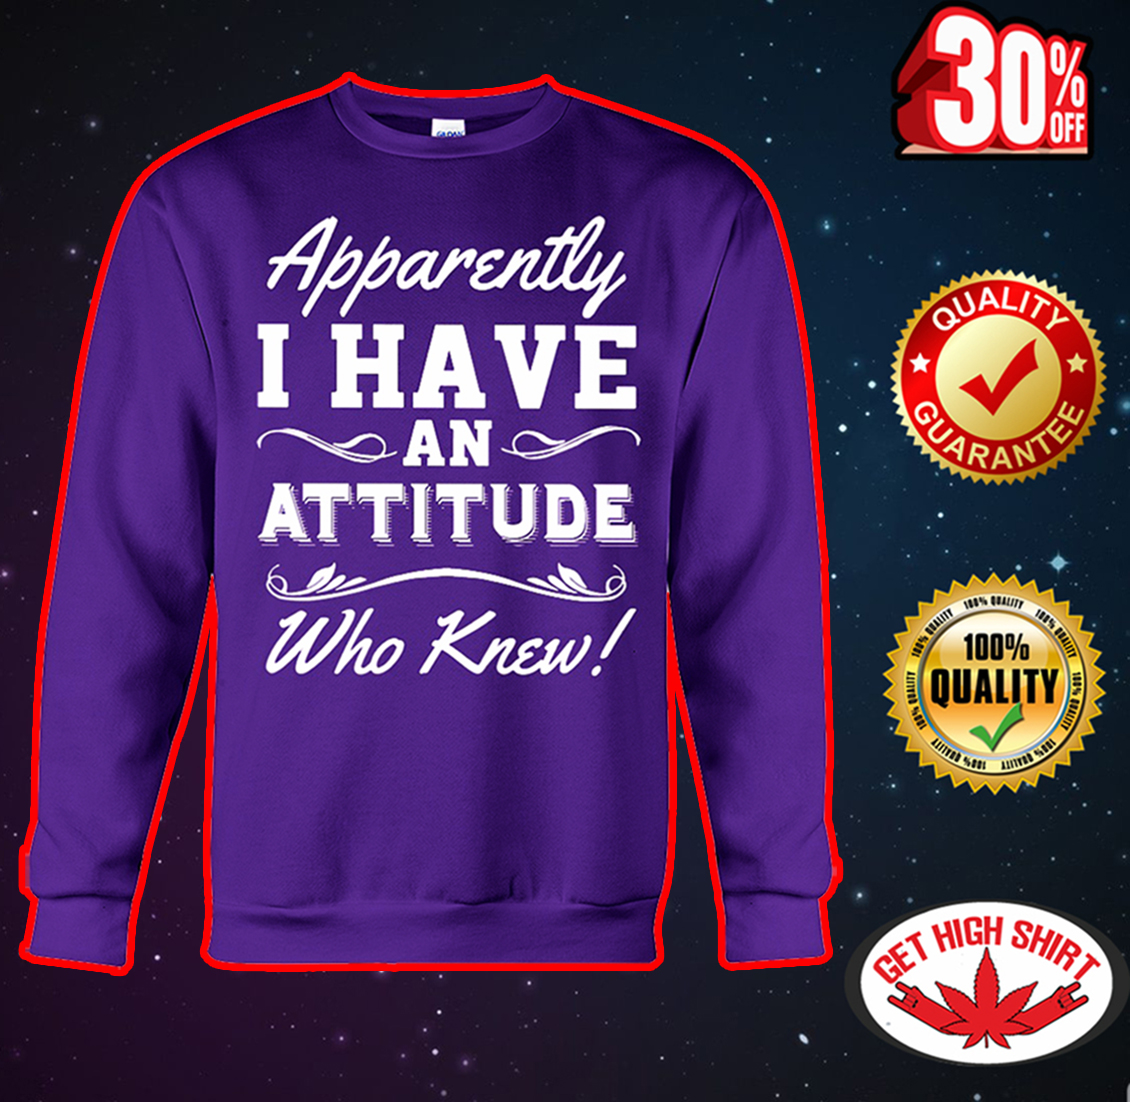 Apparently I have an attitude who knew sweatshirt